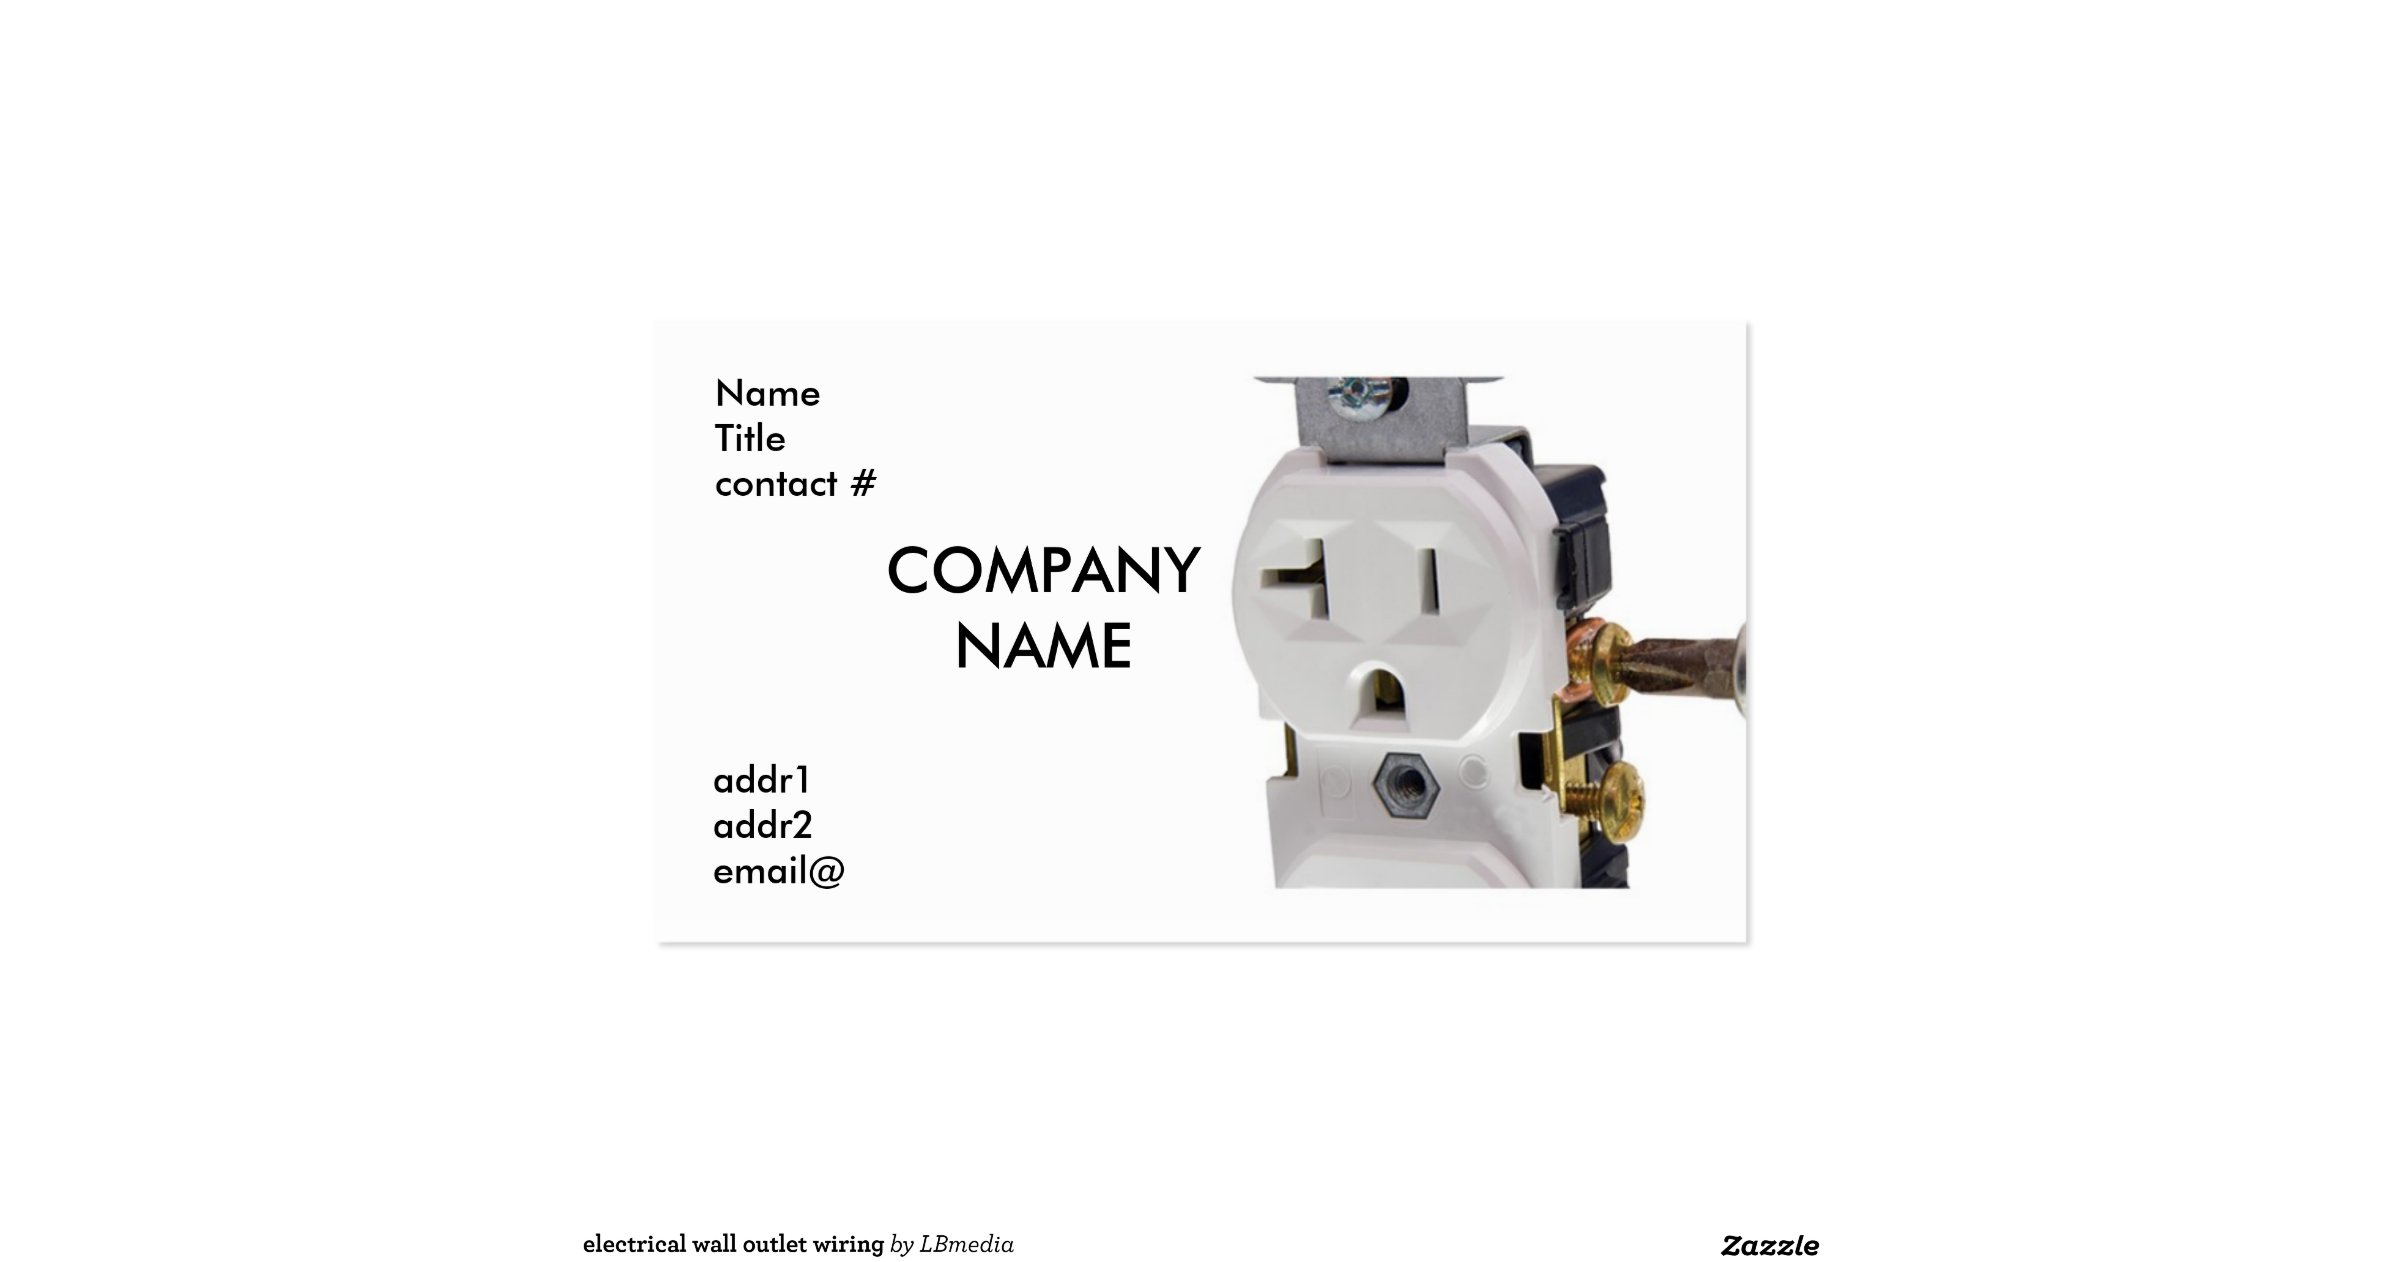 rj11 wiring standard electrical_wall_outlet_wiring_double_sided_standard ... #4